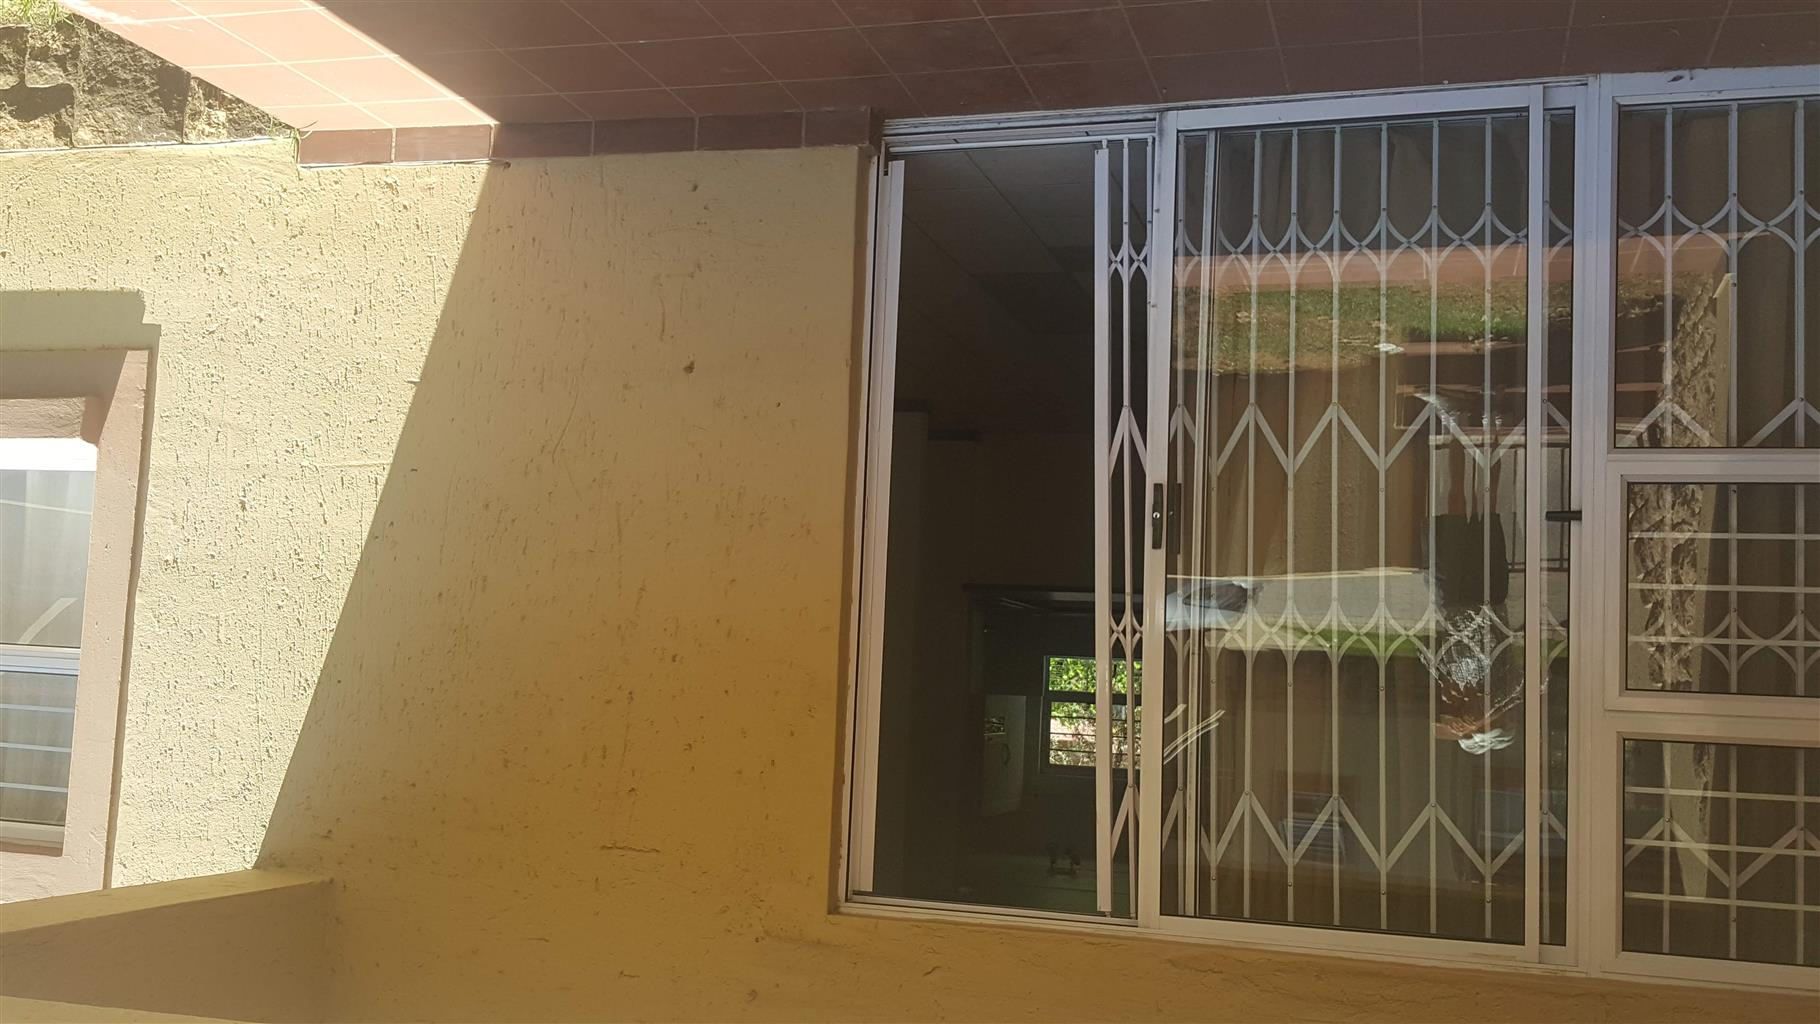 Beautiful two bedroom flat in security complex Inyanga , Simba rd 2, Sunninghill , Sandton.